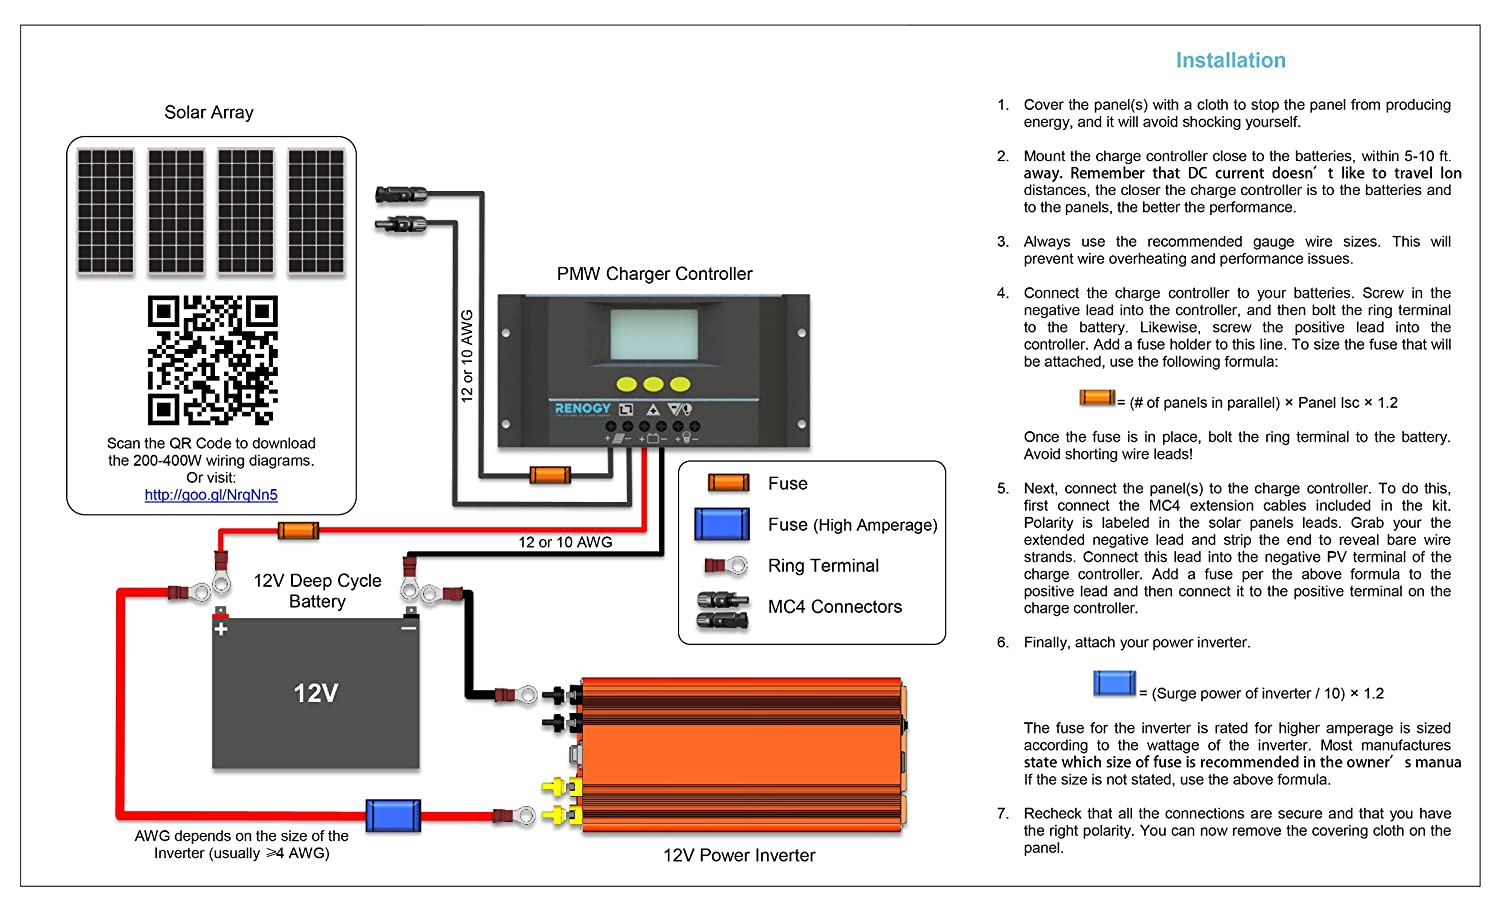 Mcu Enhances Dcdc Converter Output For Hybridelectric Vehicle Applications likewise Automatic Solar Tracking System Using Interfacing Ic And Geared Motor besides Fronius 10000w Kit furthermore Installing Renogy 200 Watt Solar Kit furthermore Zasilanie Z Usb. on solar panels circuit diagram 4